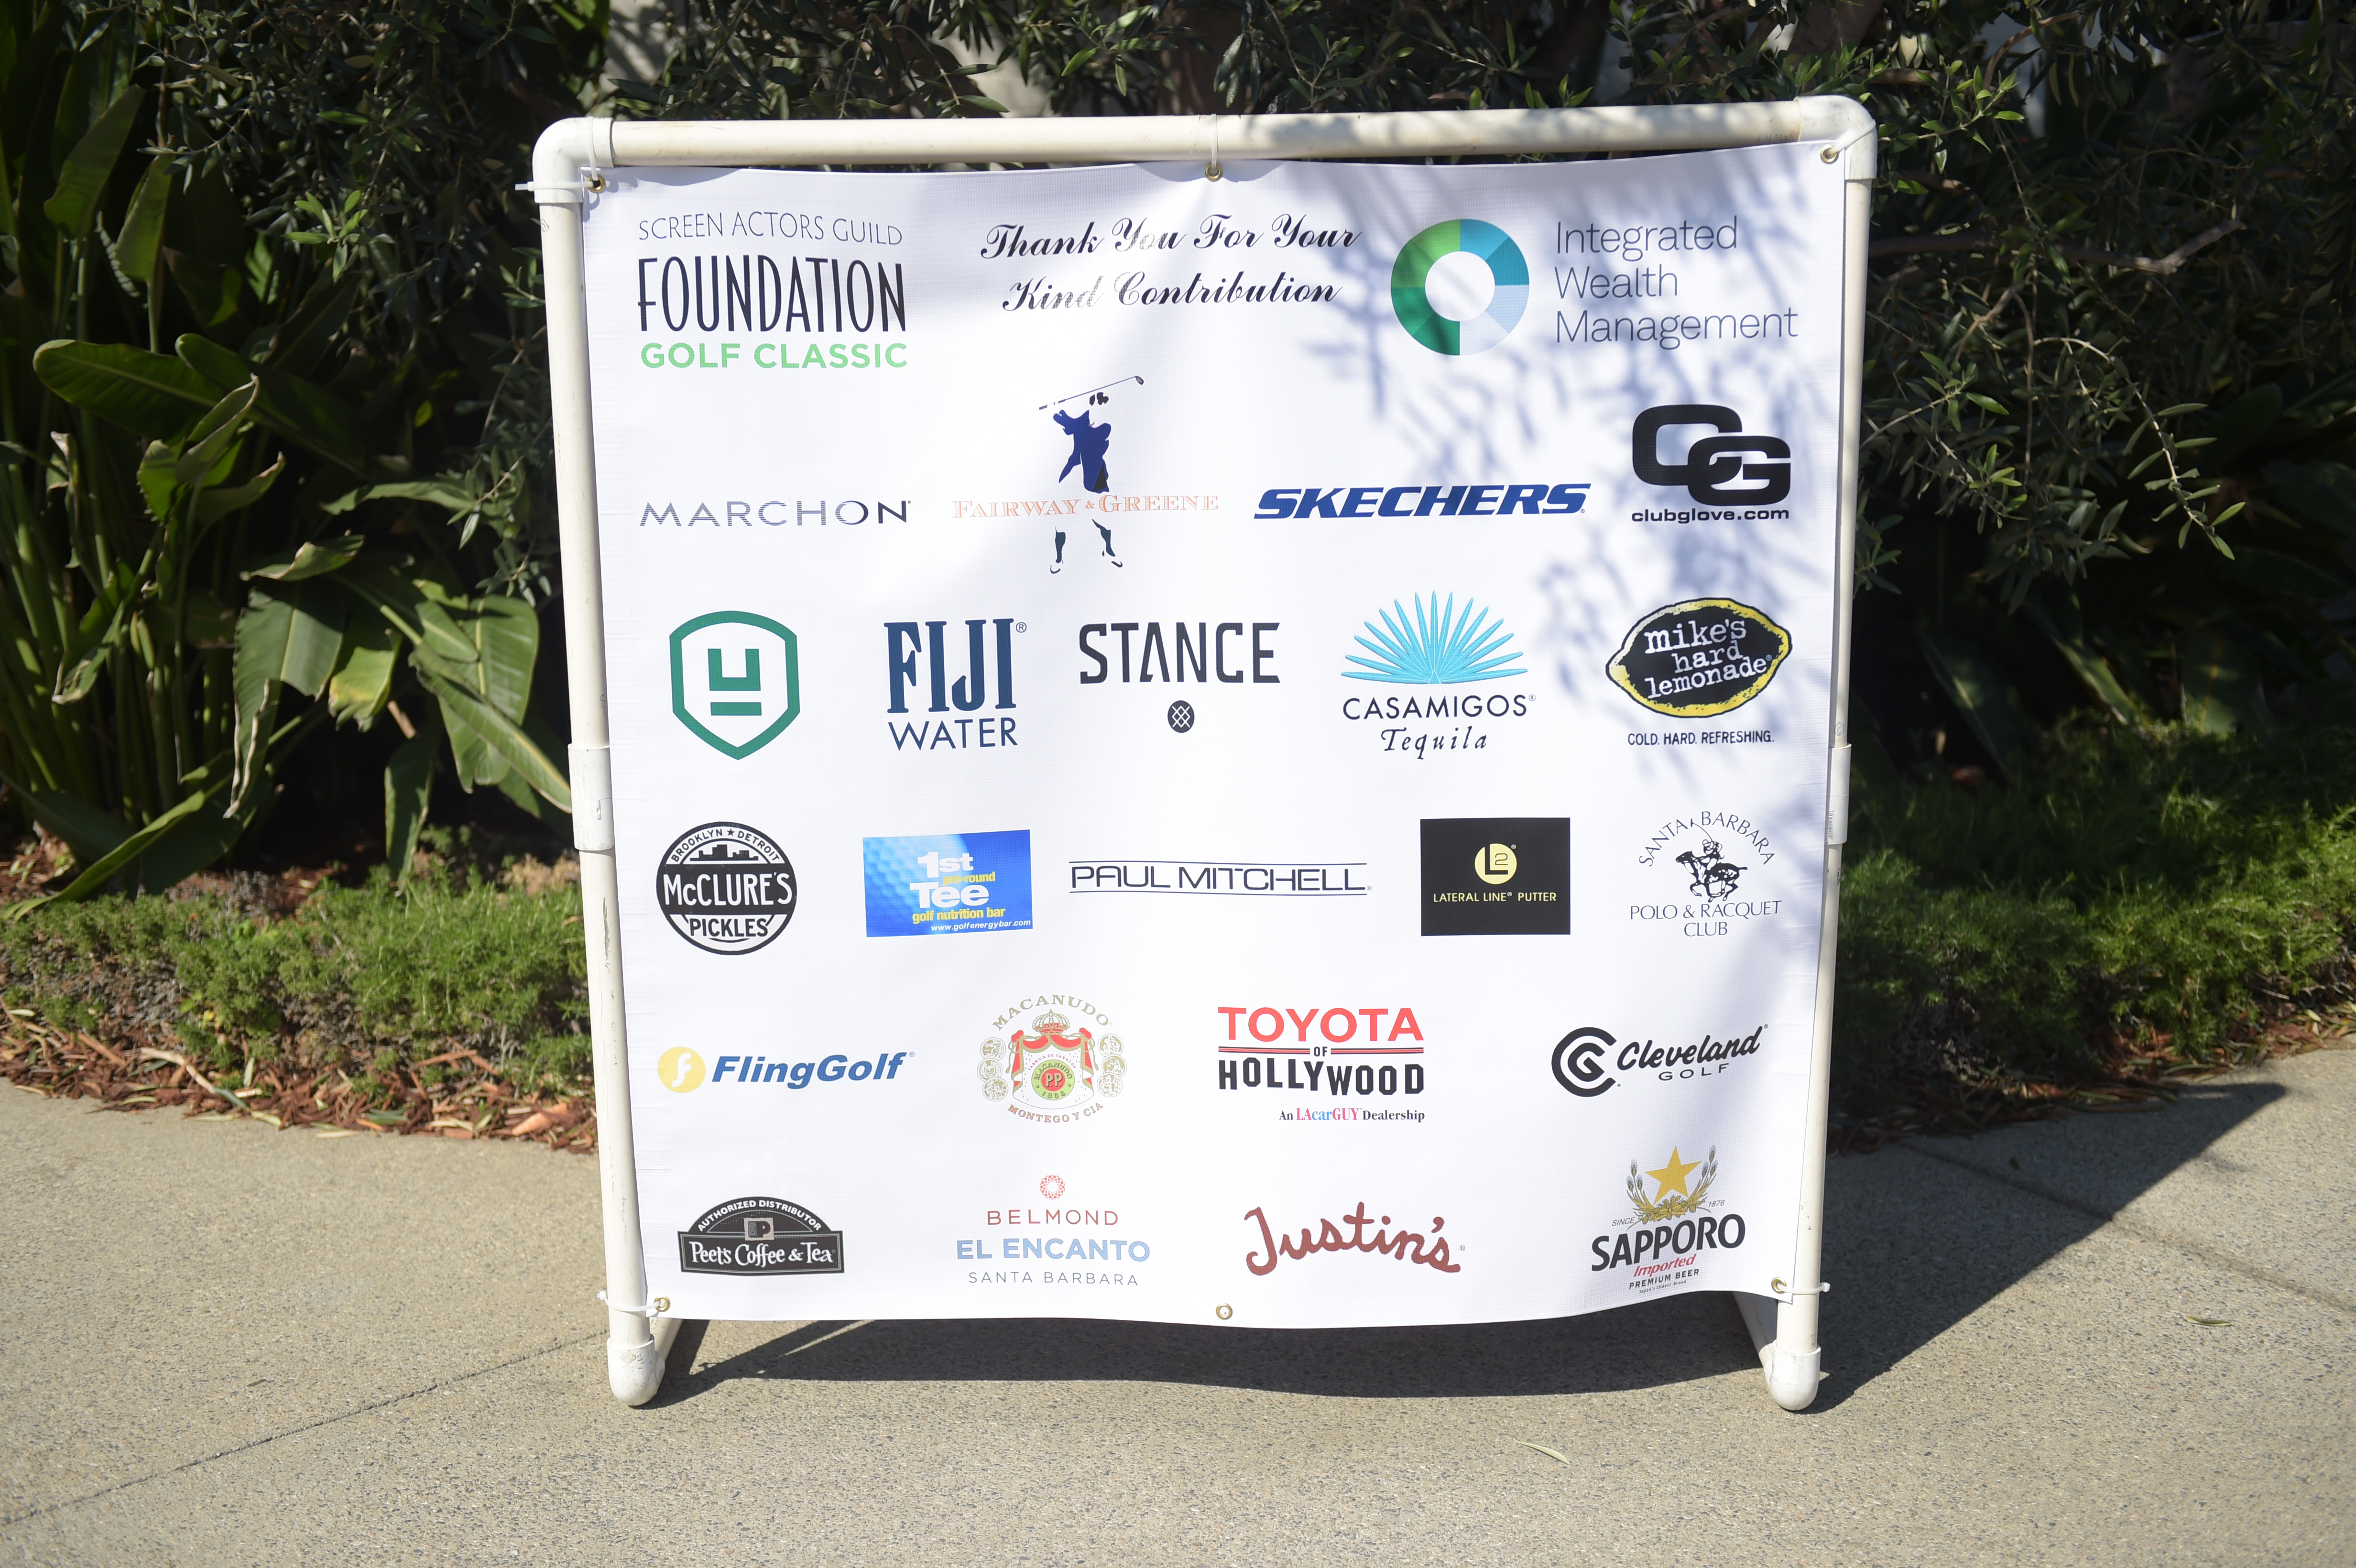 Sponsors and donors for the The Screen Actors Guild Foundation's 6th Annual Los Angeles Golf Classic on June 8, 2015 in Burbank, California. (Photo by Jason Kempin/Getty Images for The Screen Actors Guild Foundation)